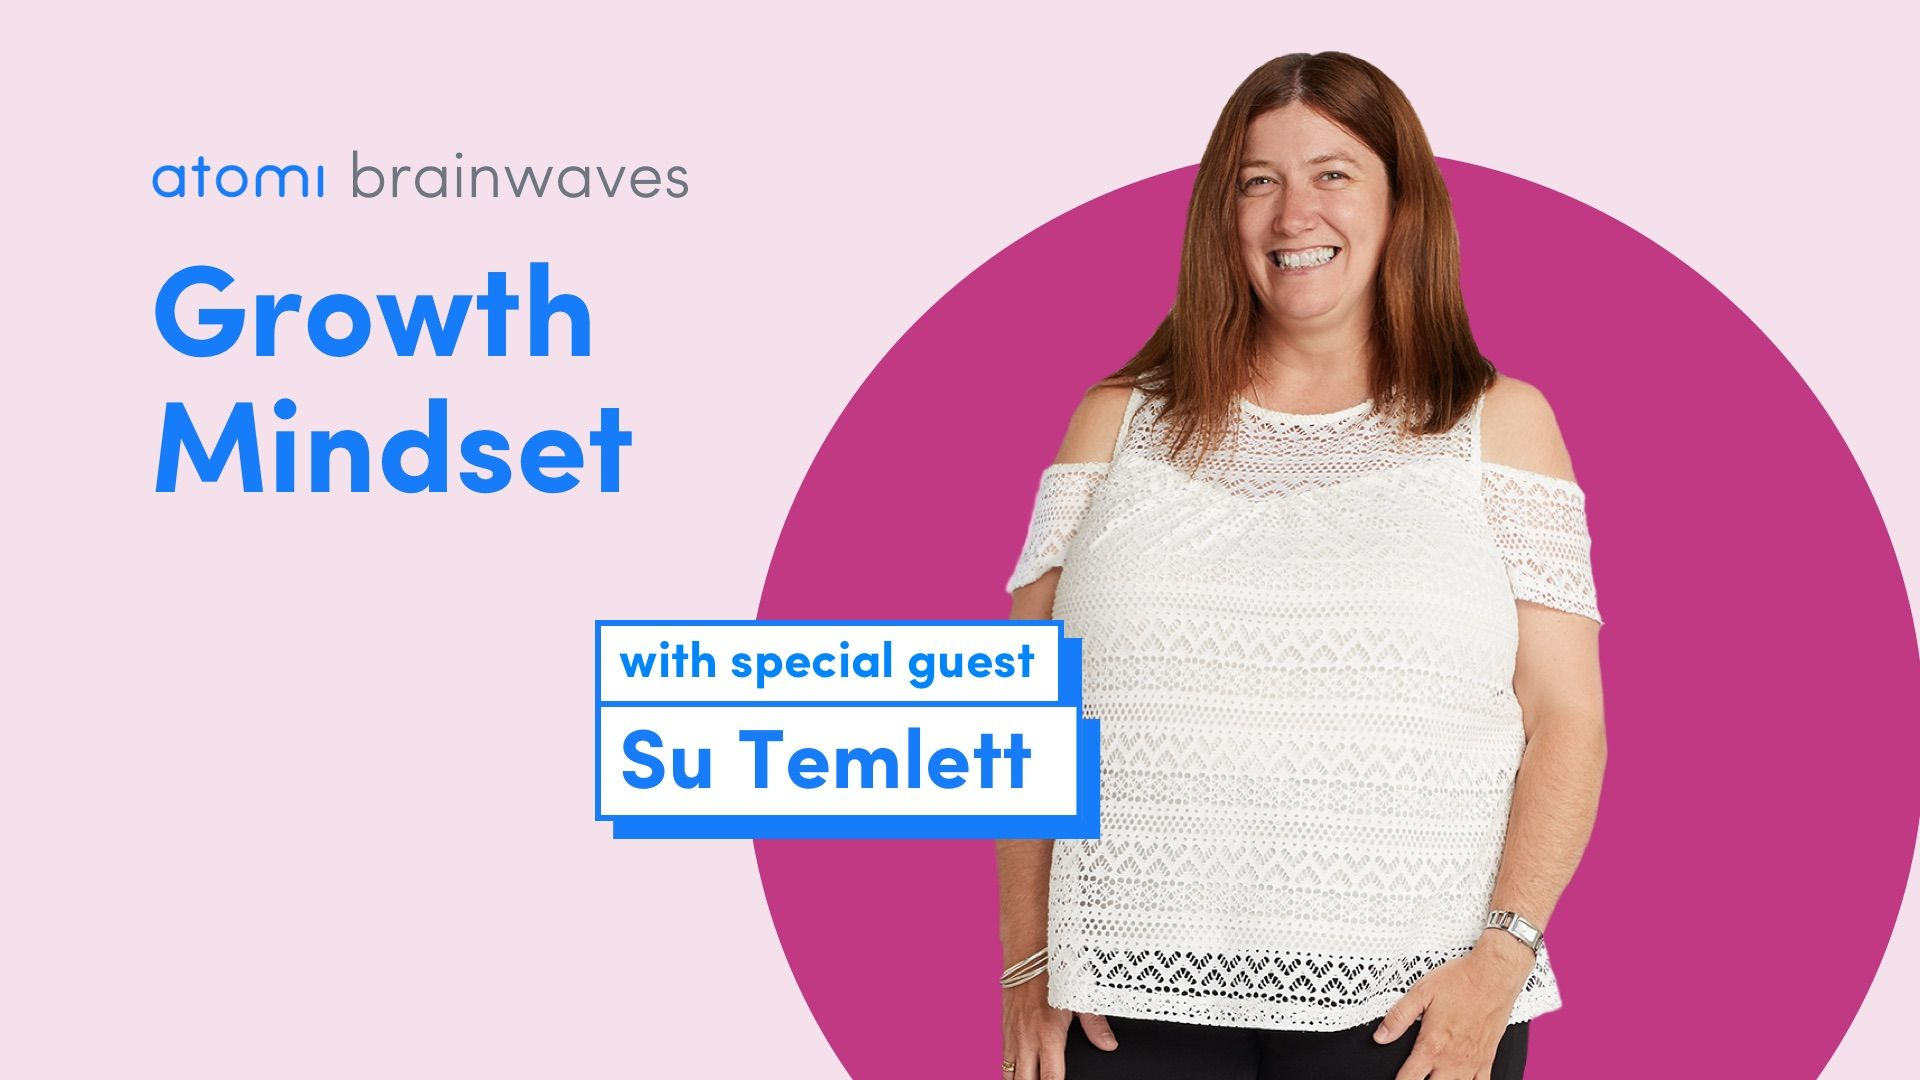 Atomi Brainwaves Podcast Growth Mindset with special guest Su Temlett